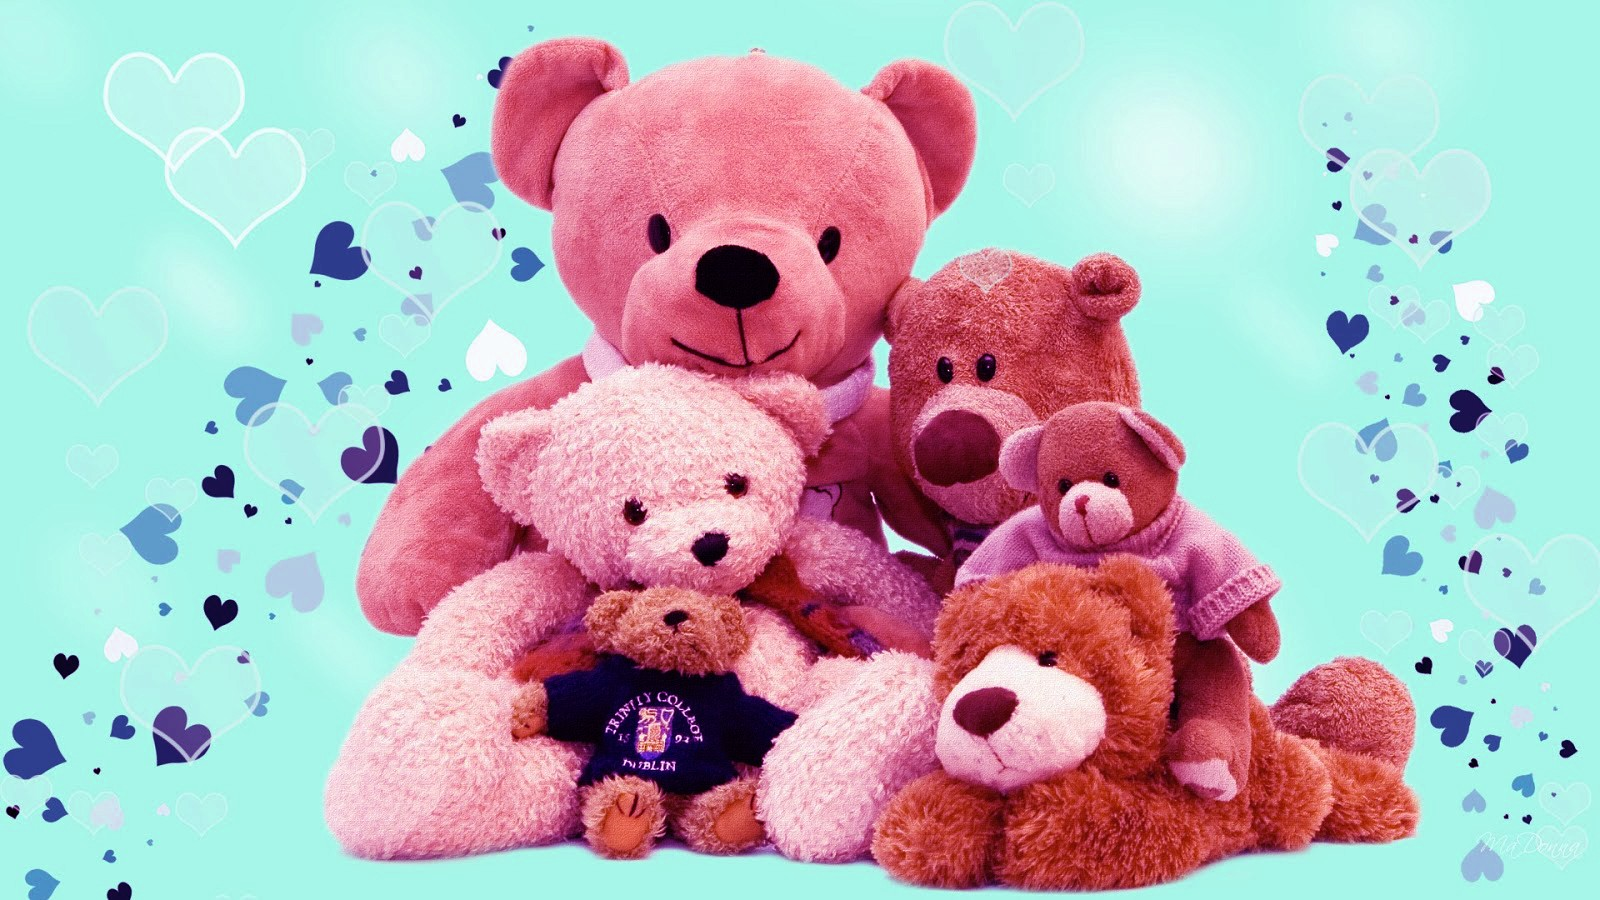 Teddy Bear Day 2018 HD Wallpaper